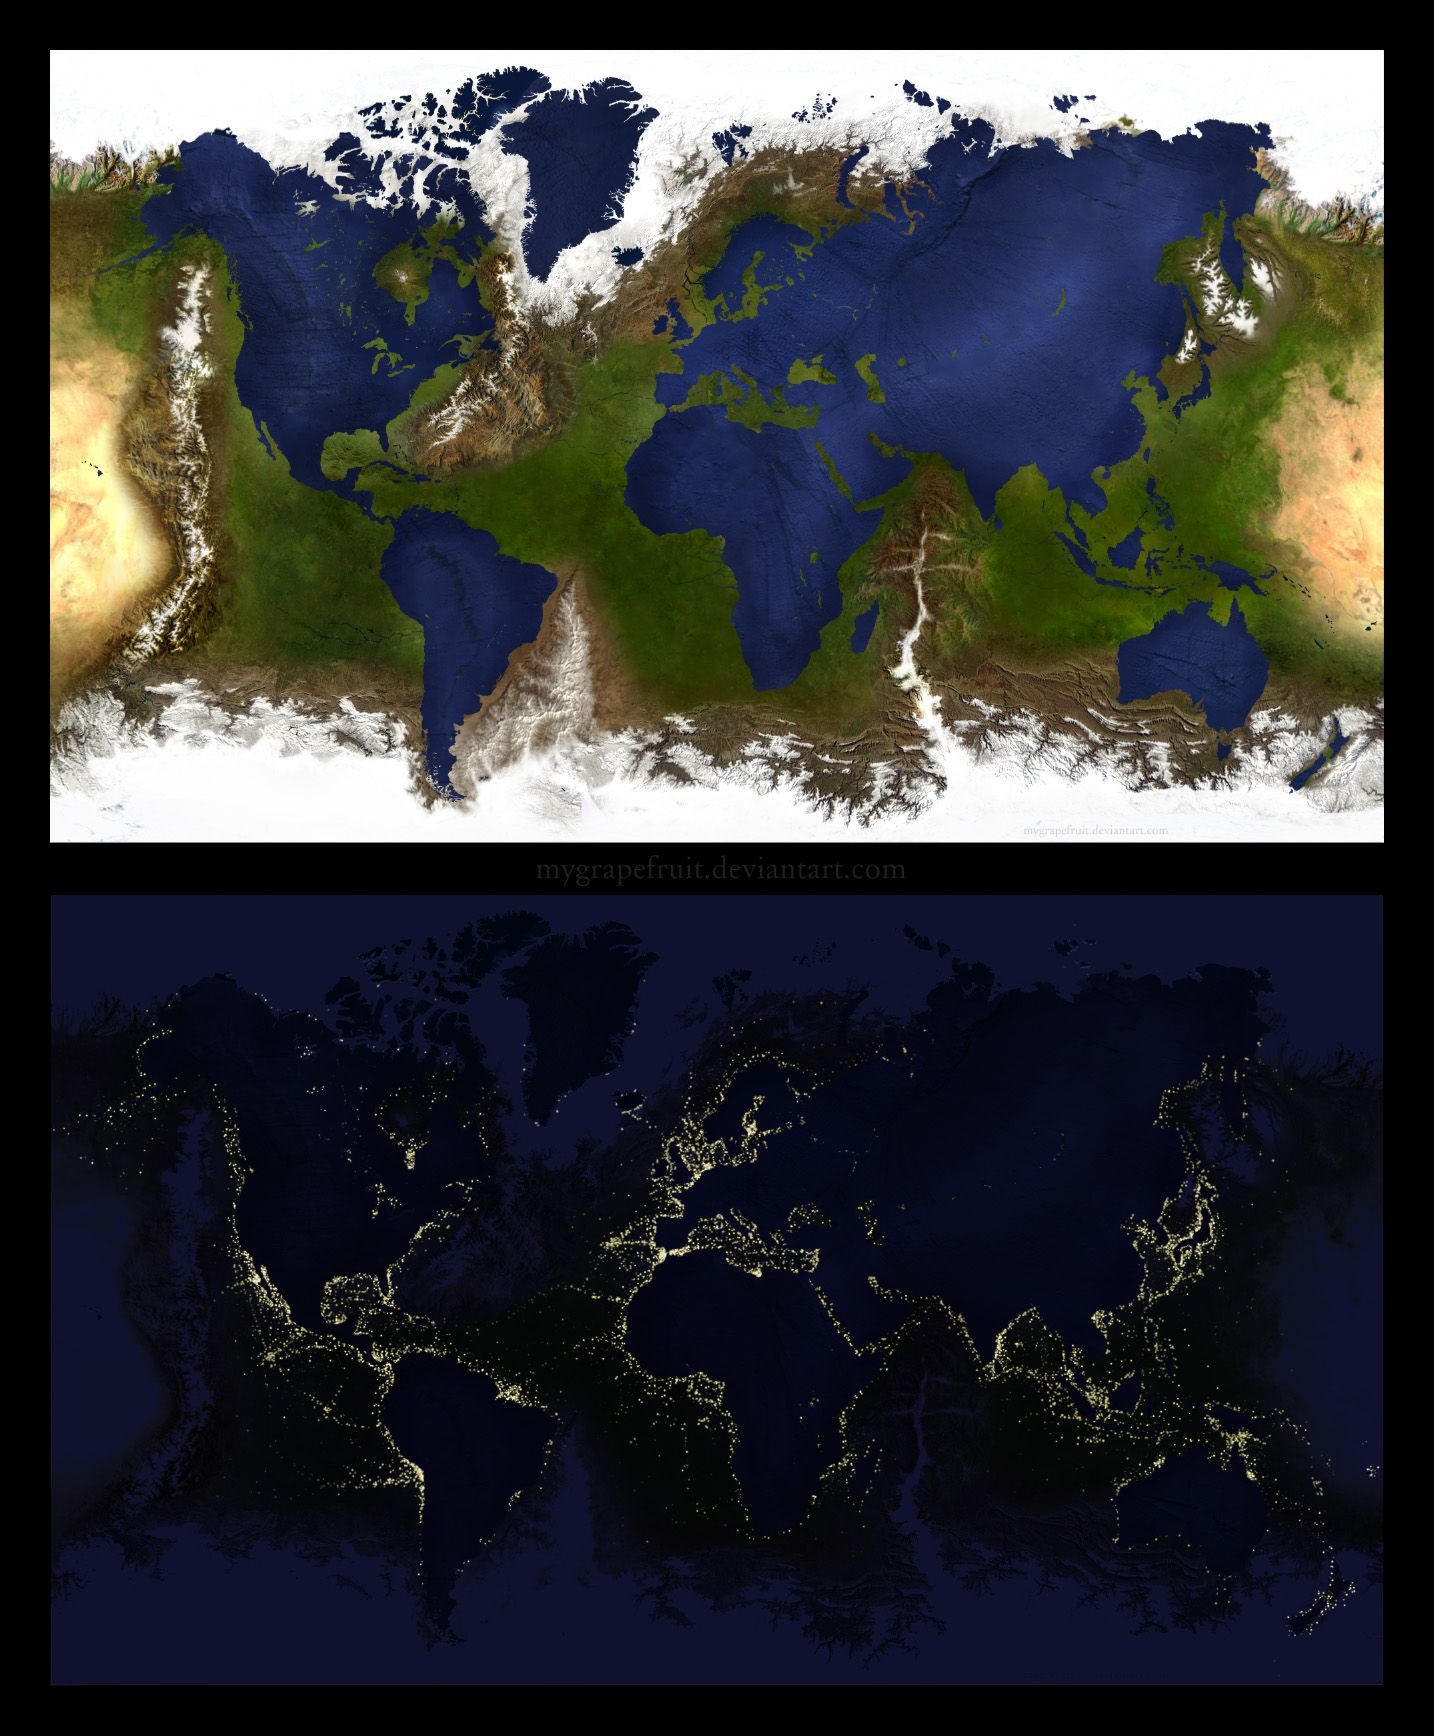 Inverted earth geographical map and nighttime image by inverted earth geographical map and nighttime image by mygrapefruit on deviantart gumiabroncs Choice Image